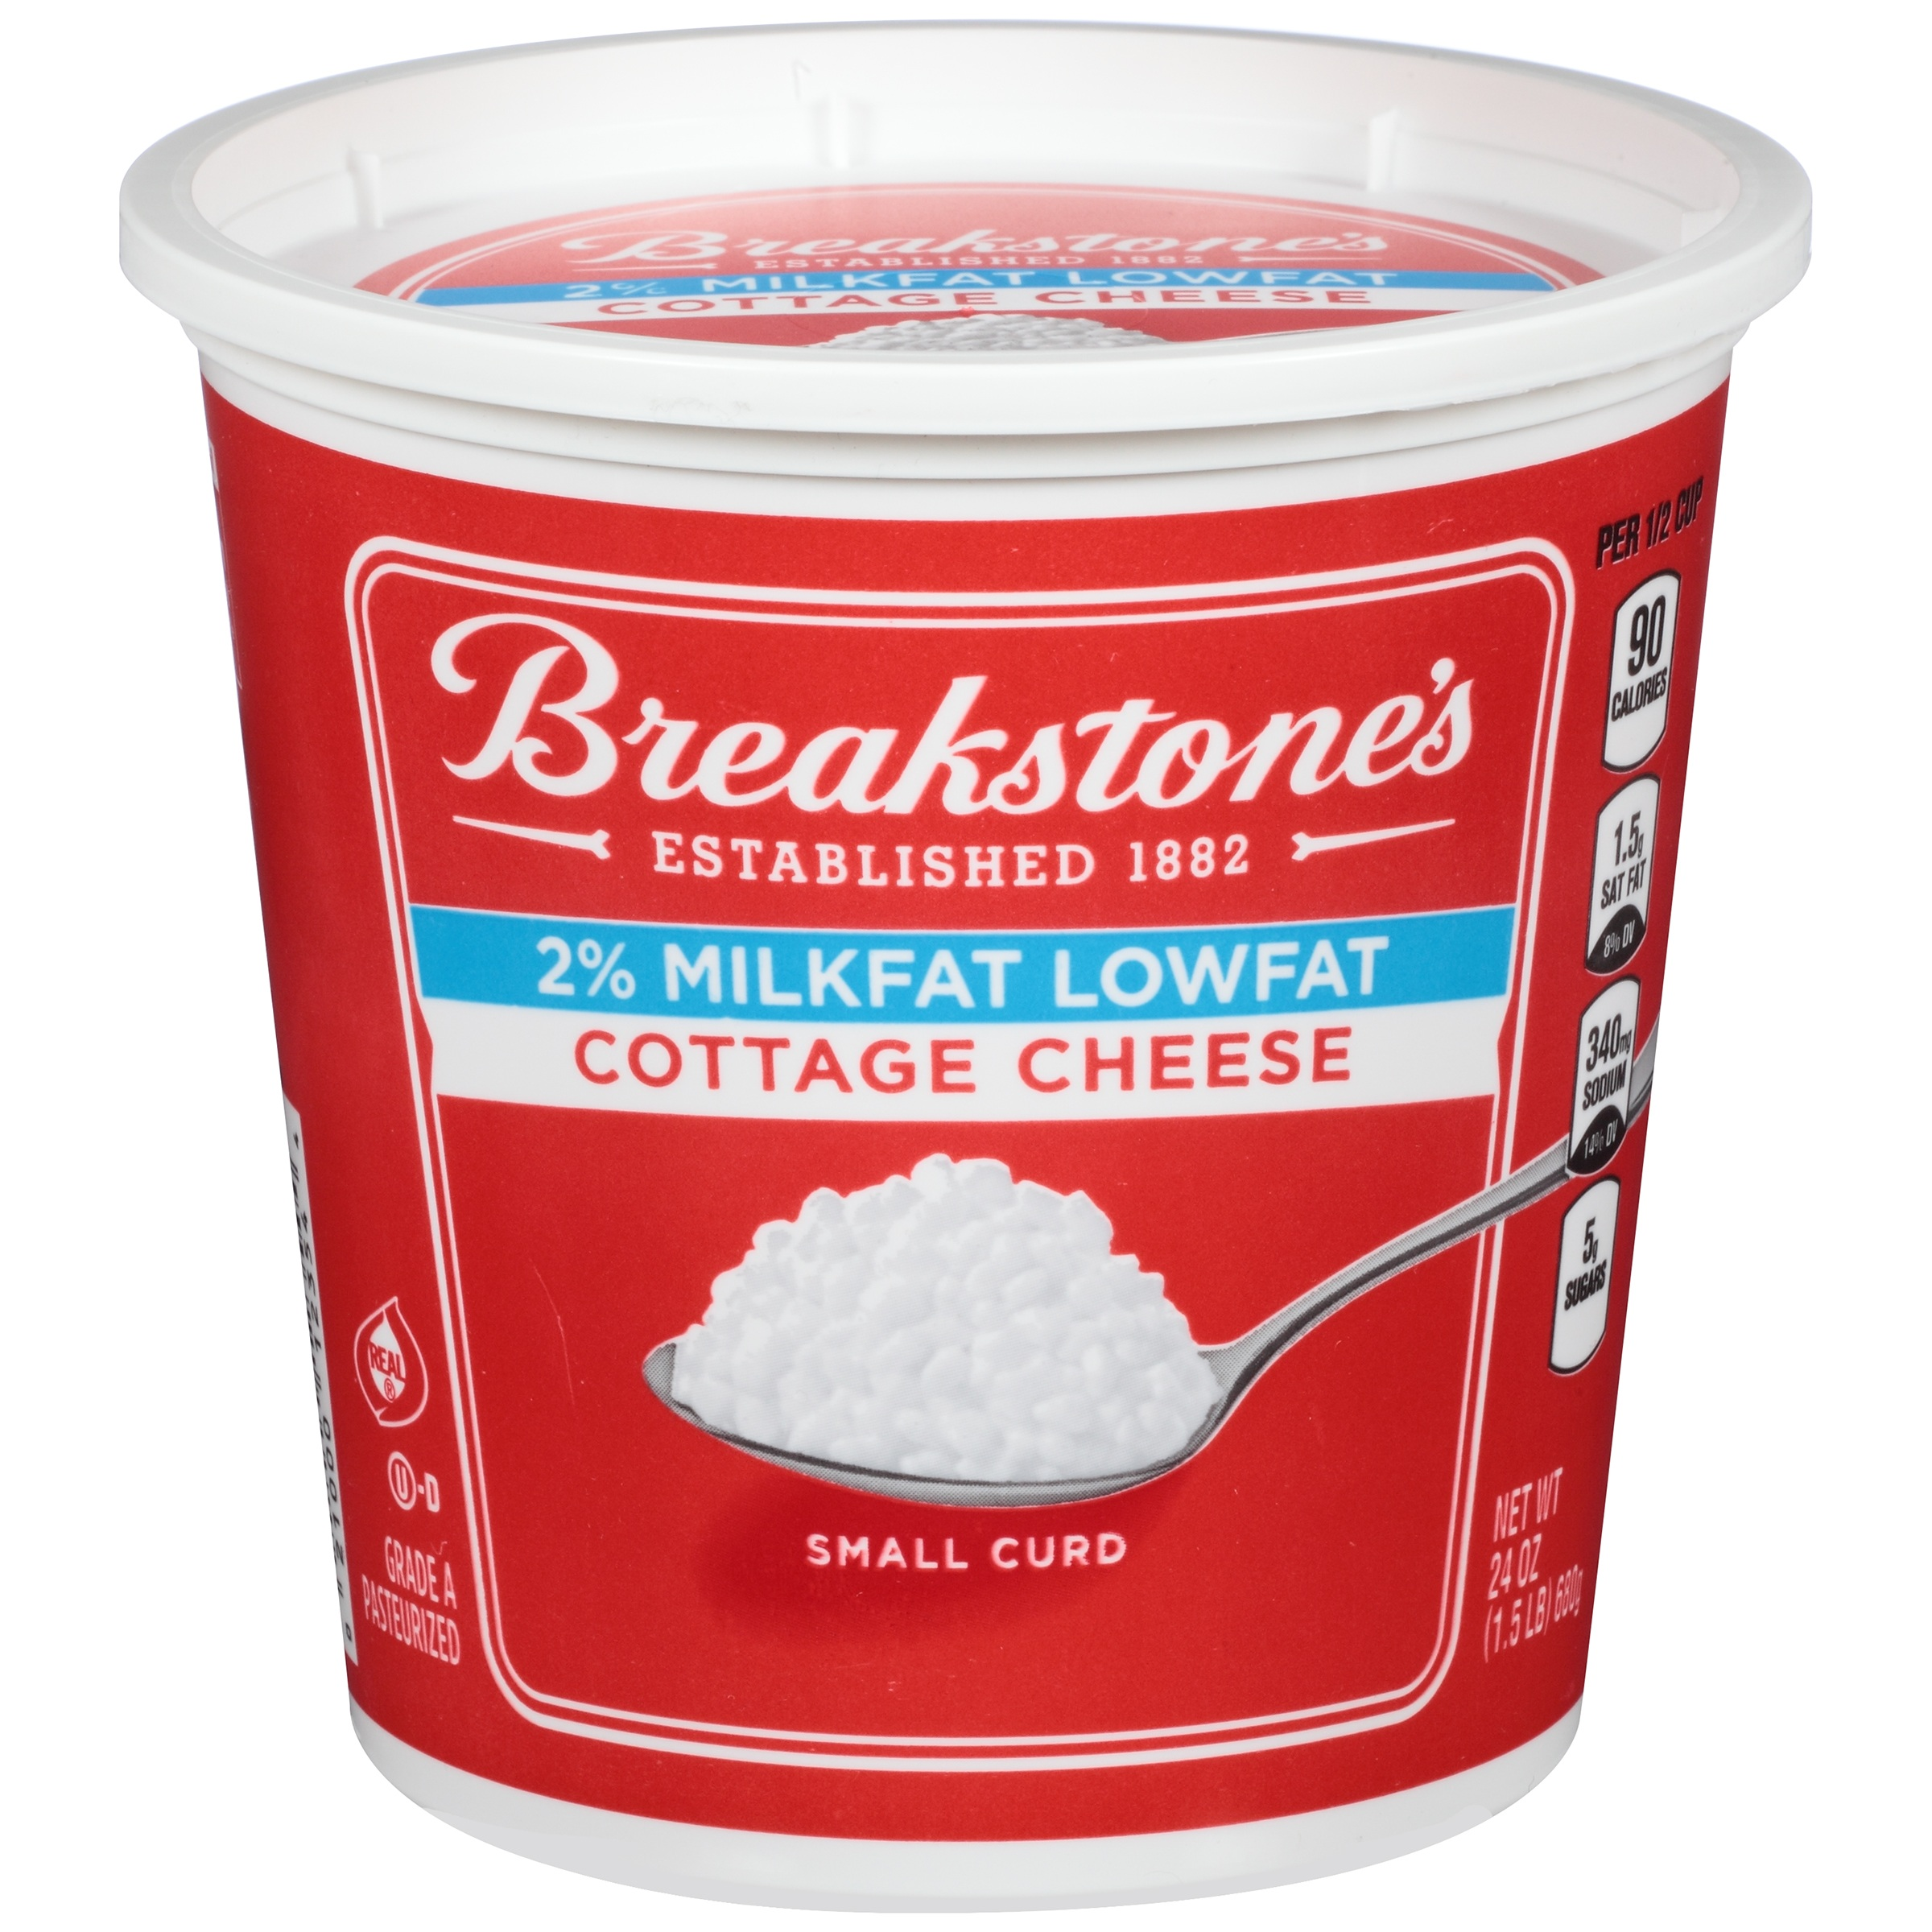 Breakstone's Small Curd Lowfat Cottage Cheese 24 oz. Tub